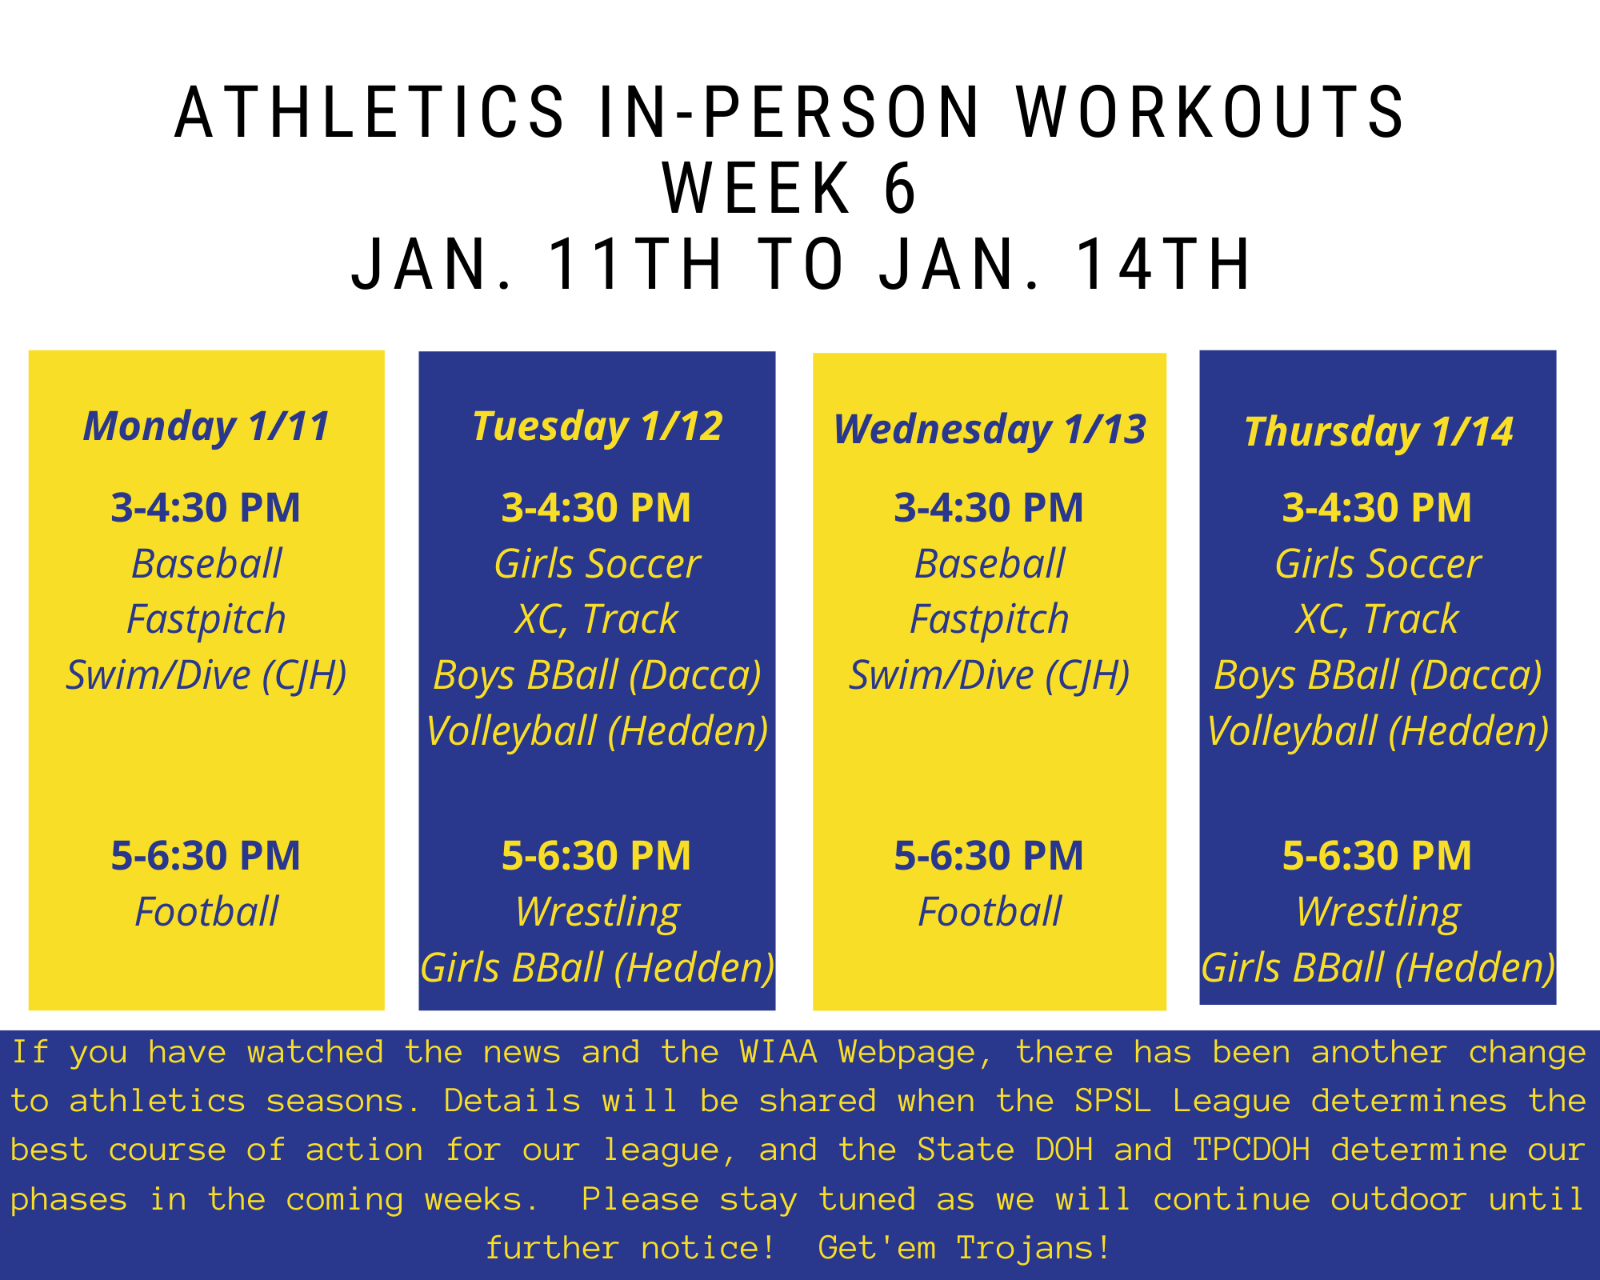 Workouts continue 1/11 to 1/14!